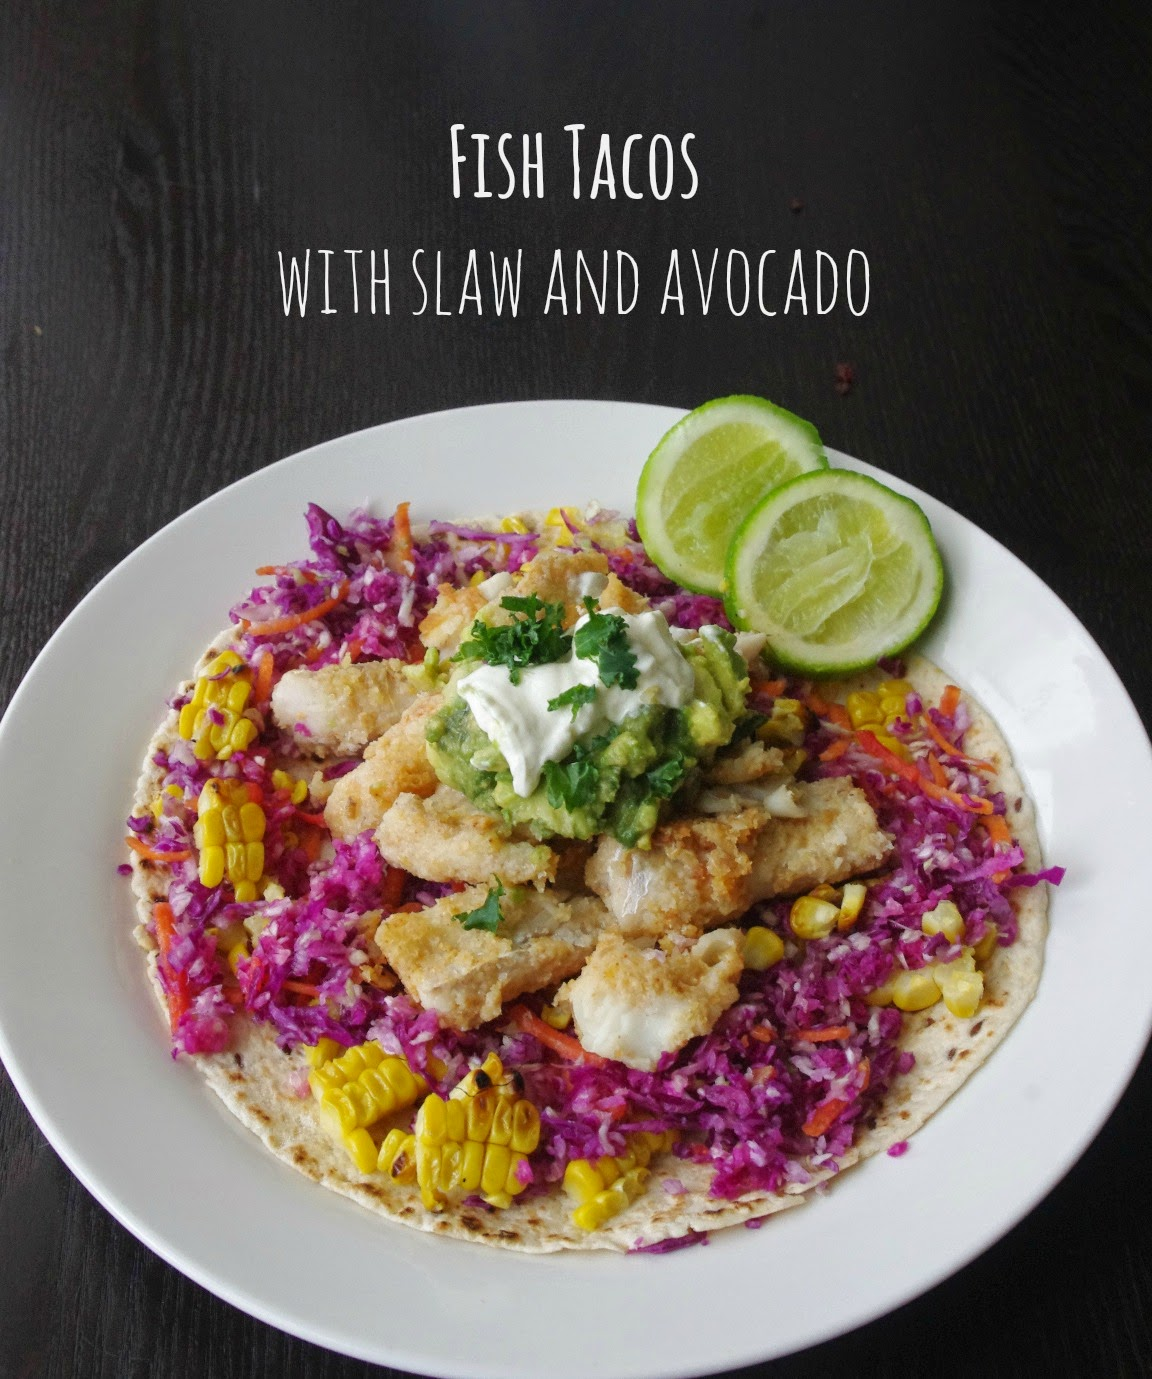 Fish-tacos-slaw-avocado